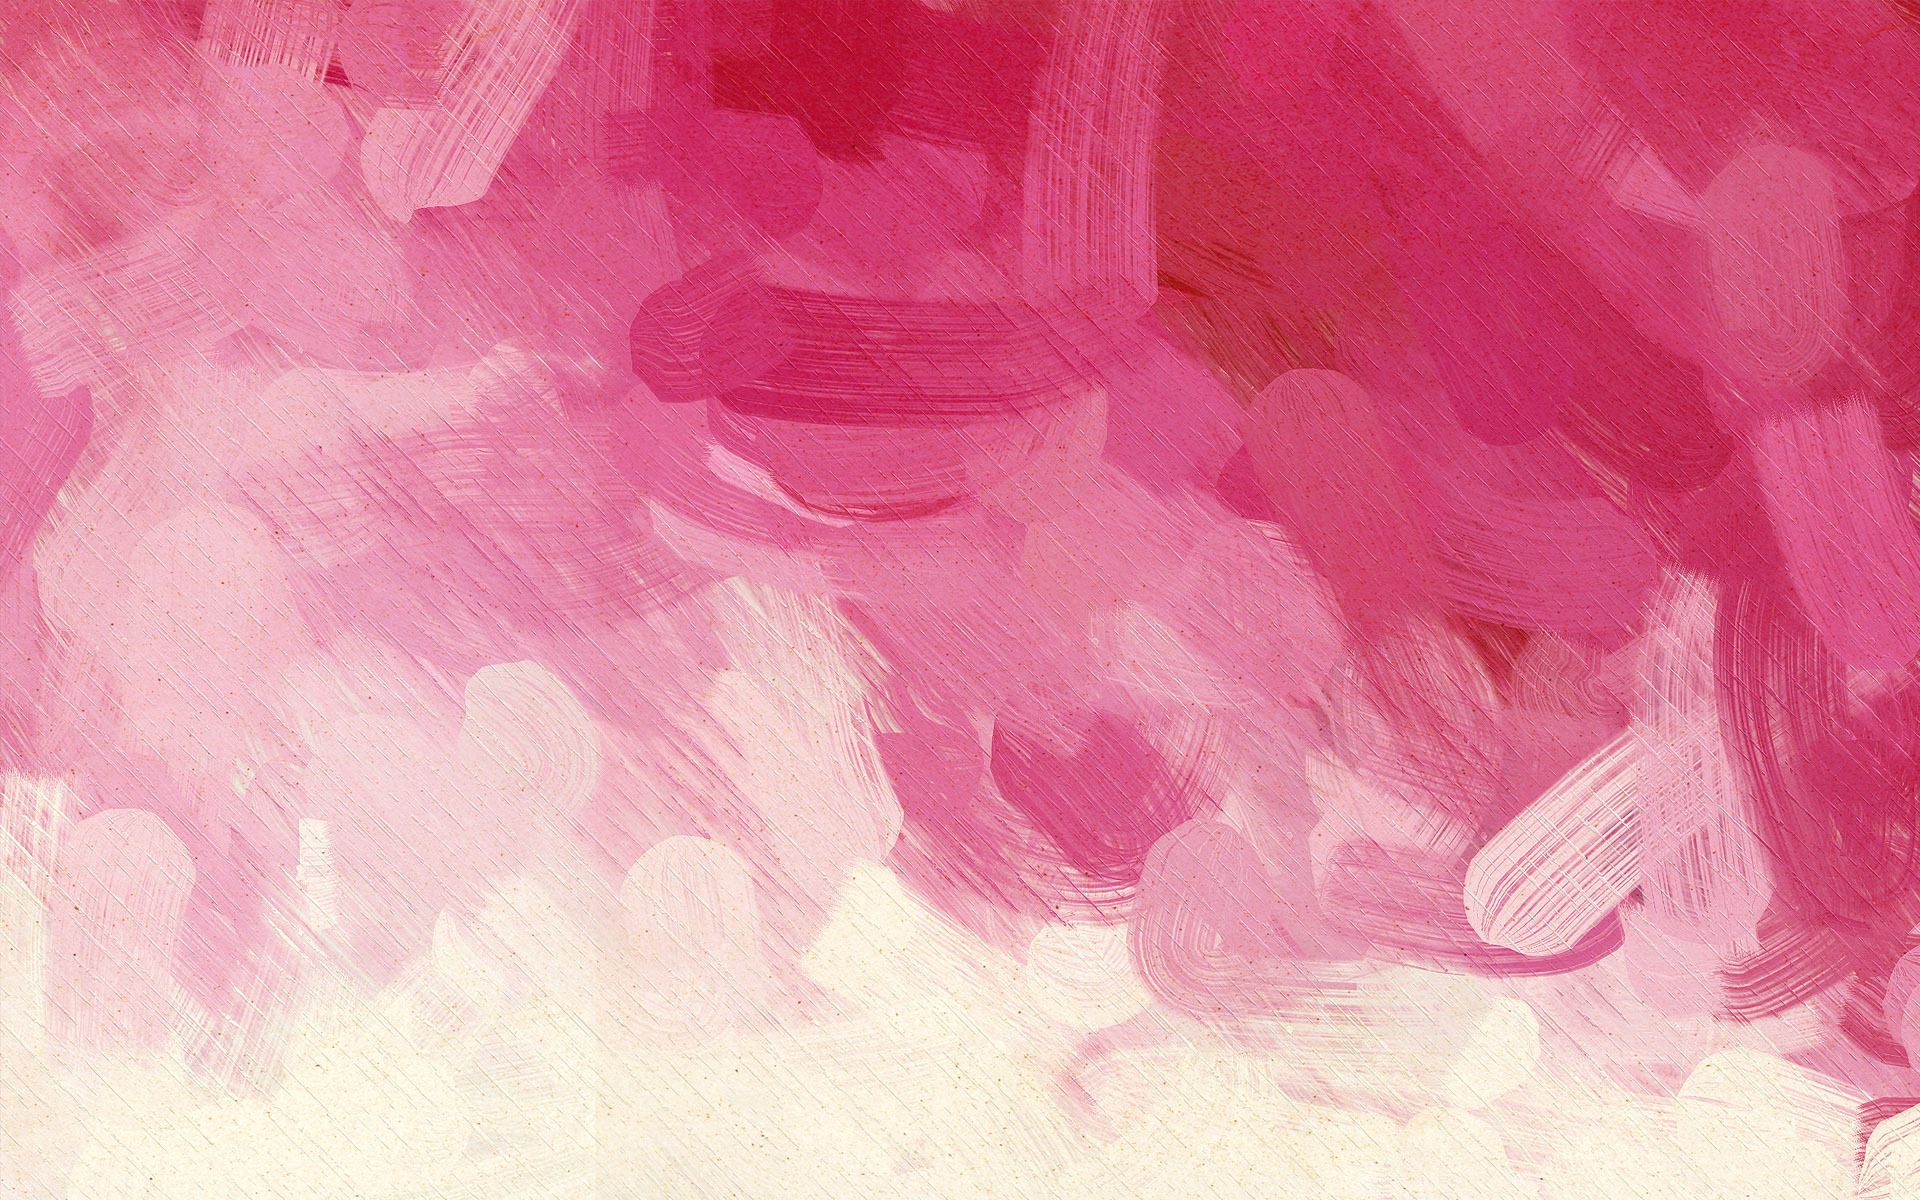 Artsy Painted Backgrounds Pink Paint Strokes Hd Wallpaper